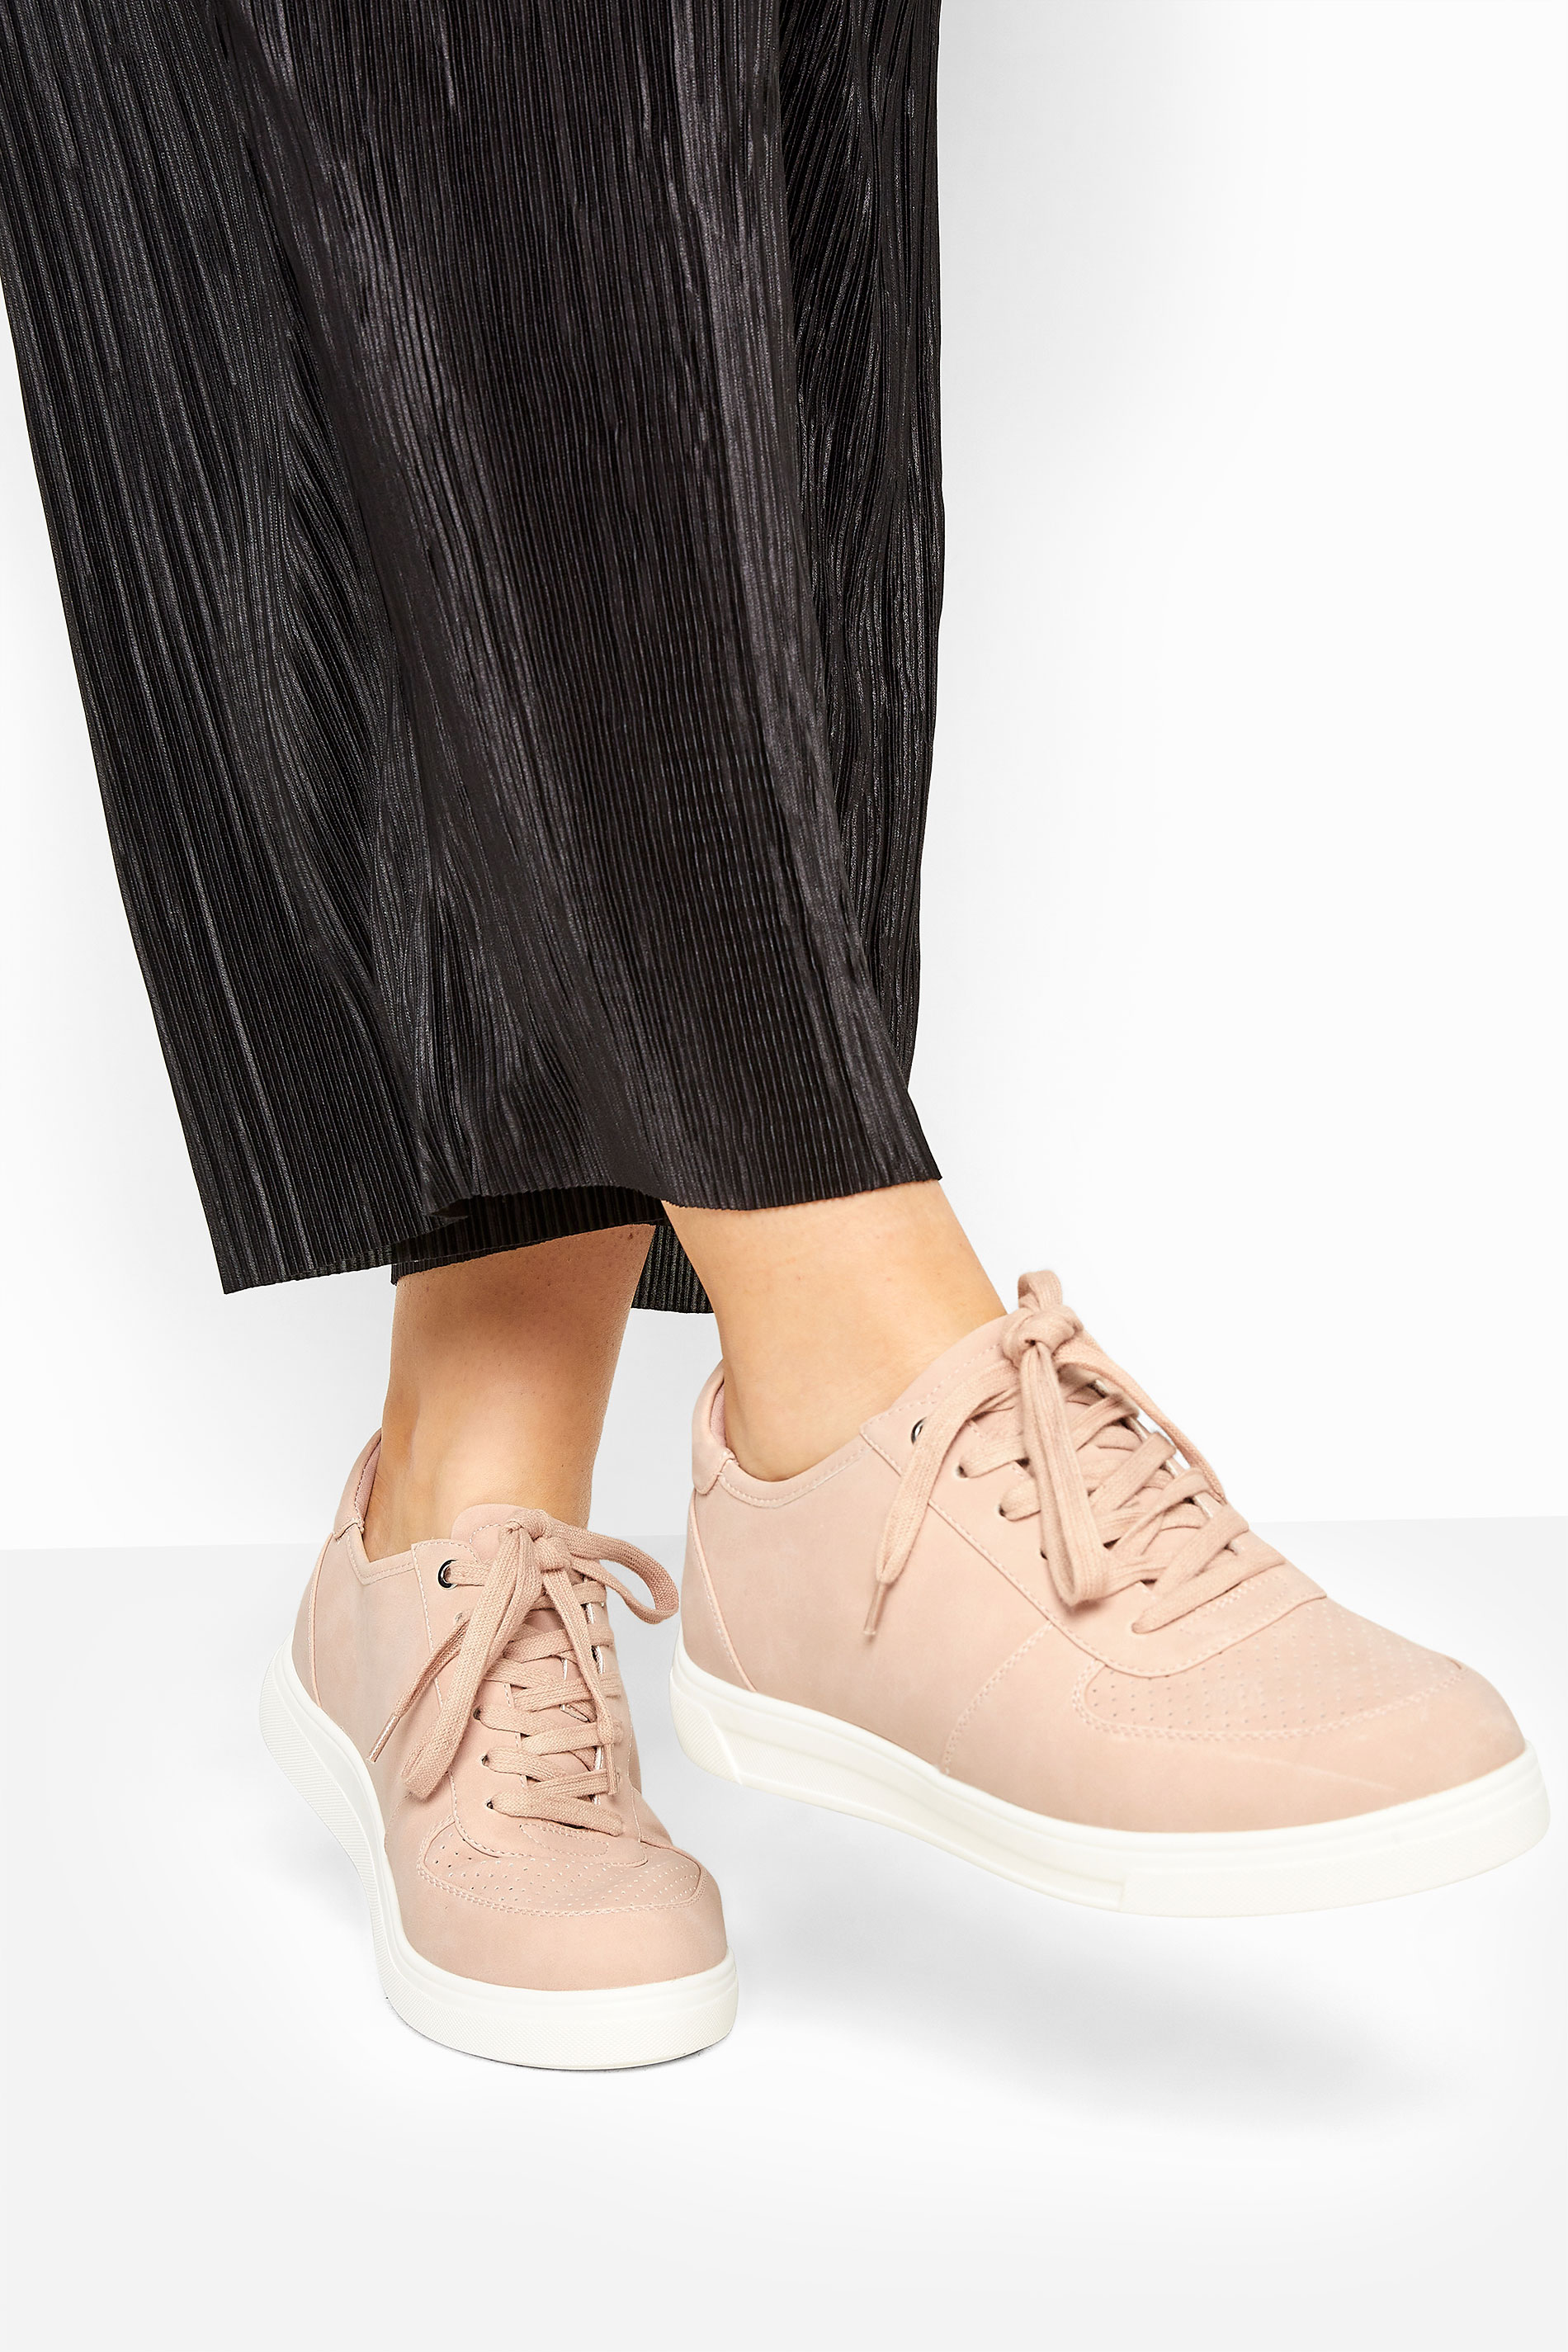 Yours Pink Vegan Leather Lace Up Trainers In Extra Wide Fit